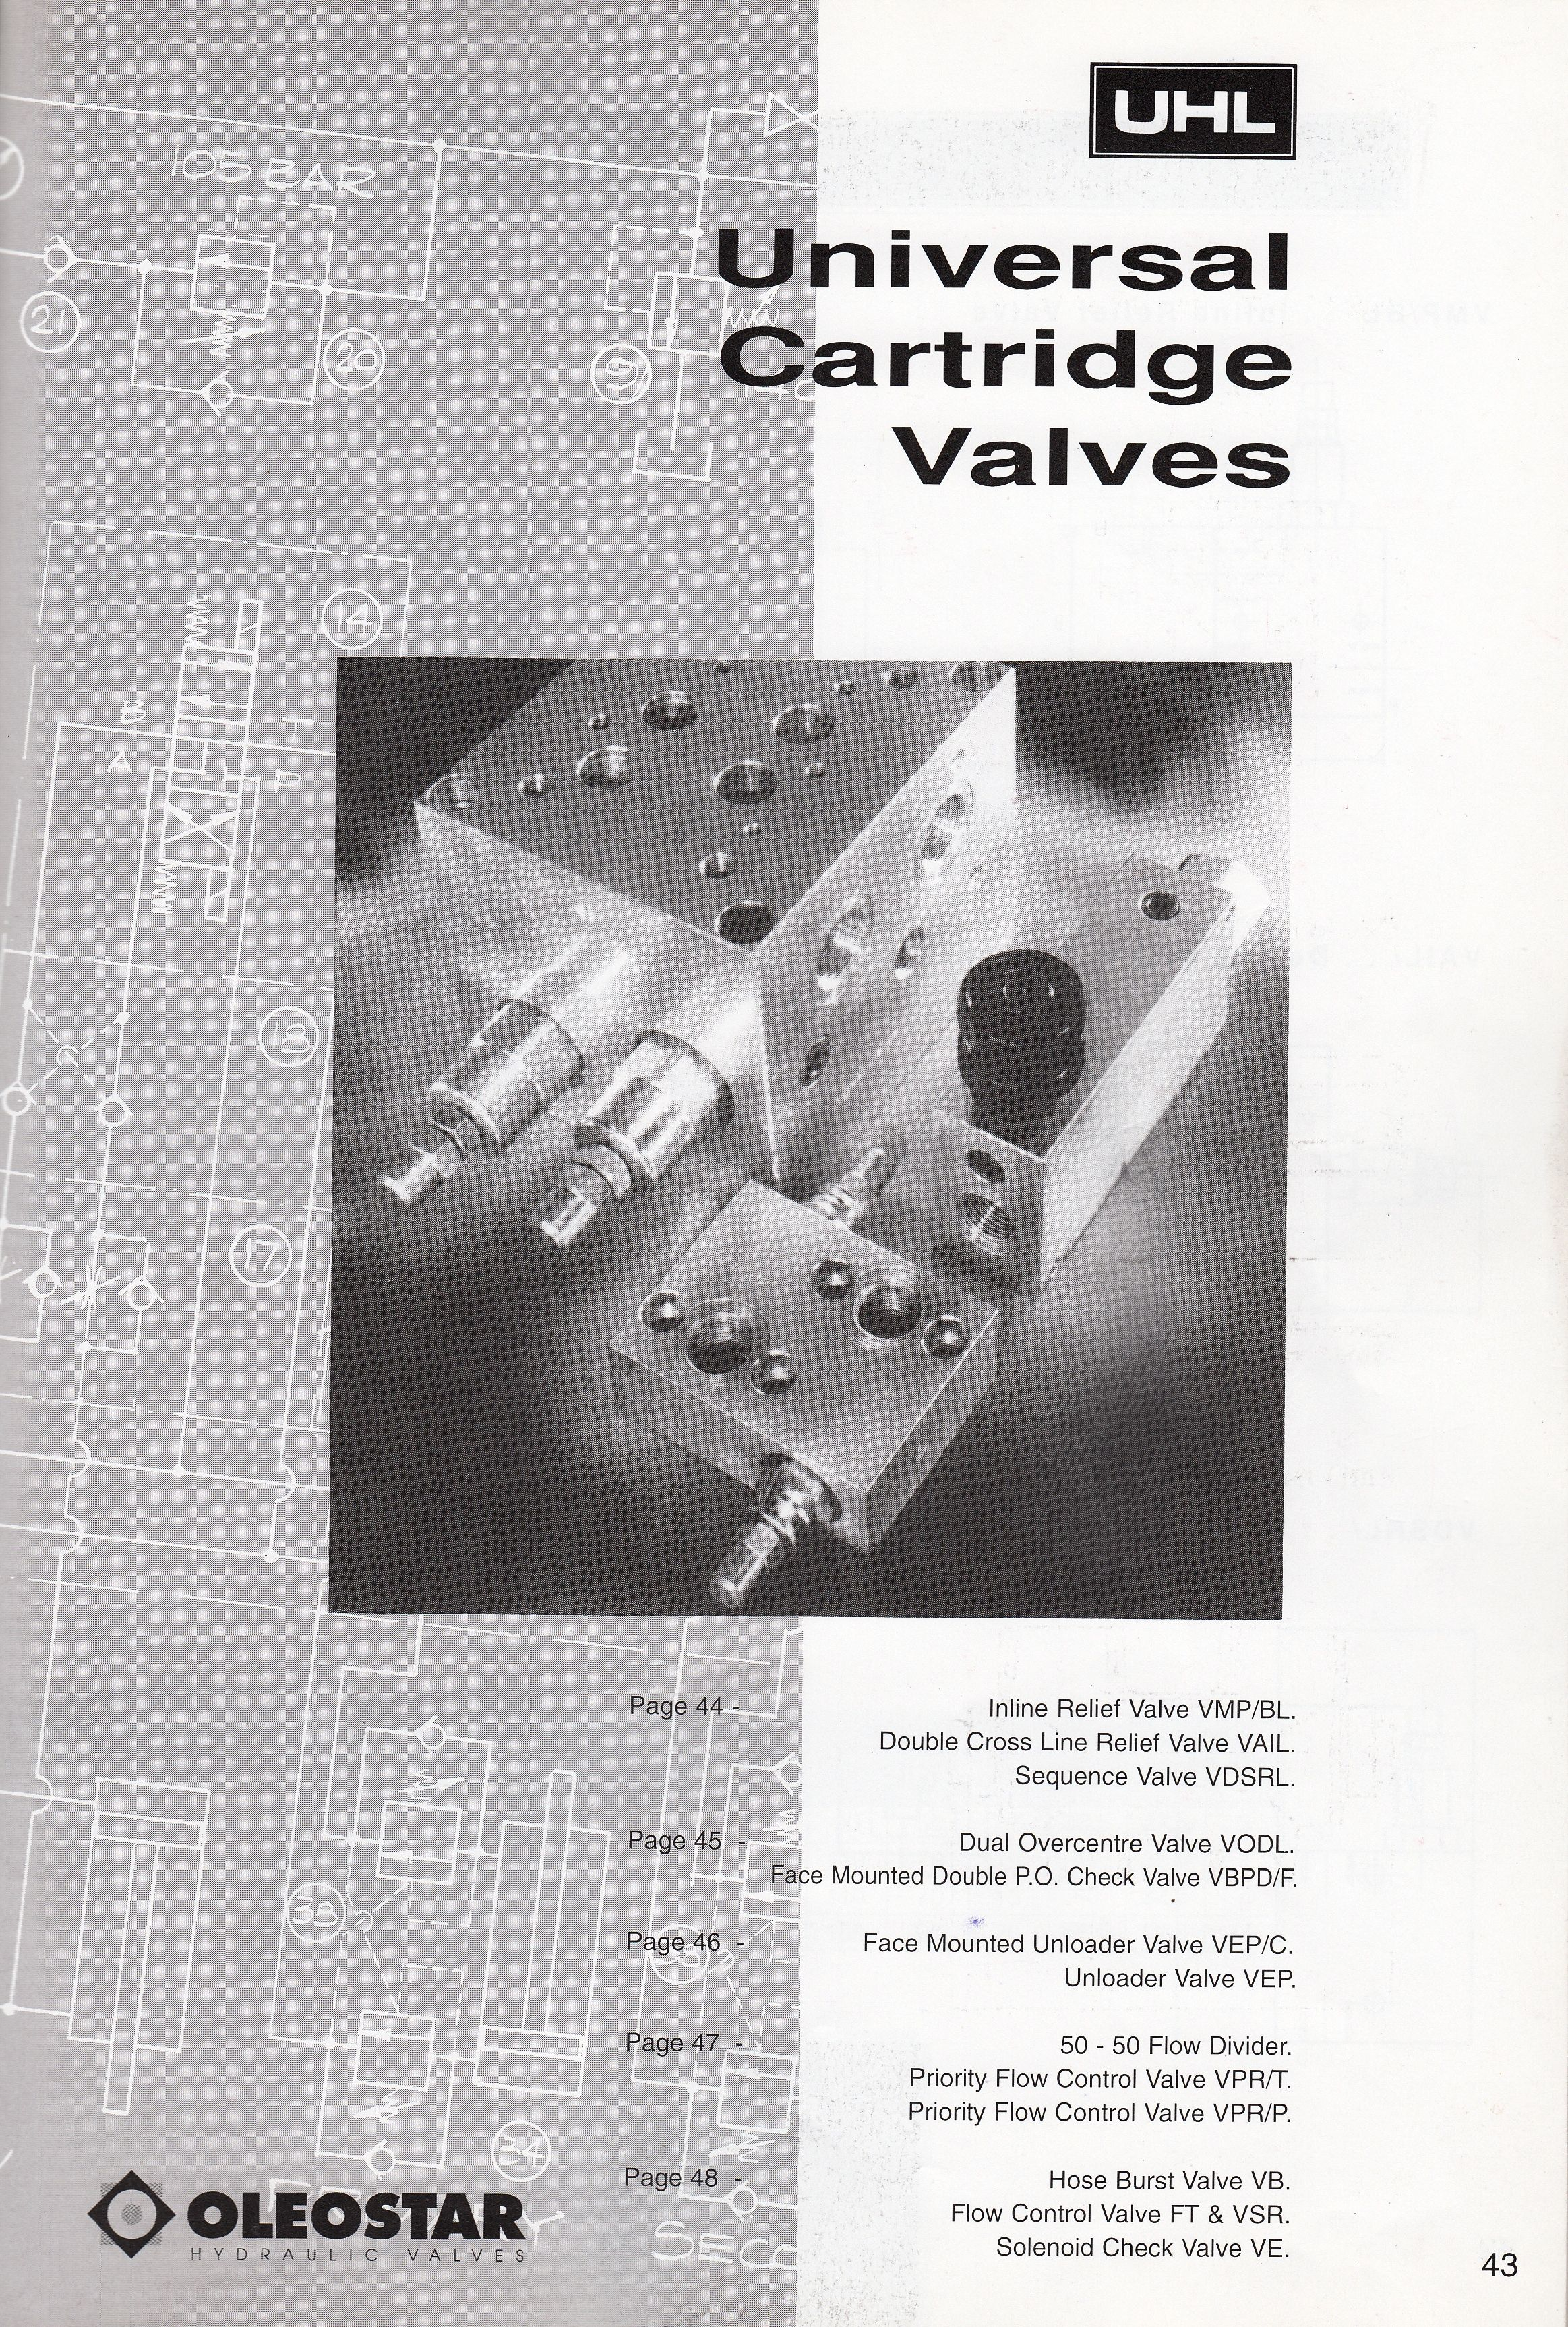 Inline Relief Valves Double Cross Line Dual Overcentre Pilotoperated Hydraulic Circuits Valve Facemounted Po Checks